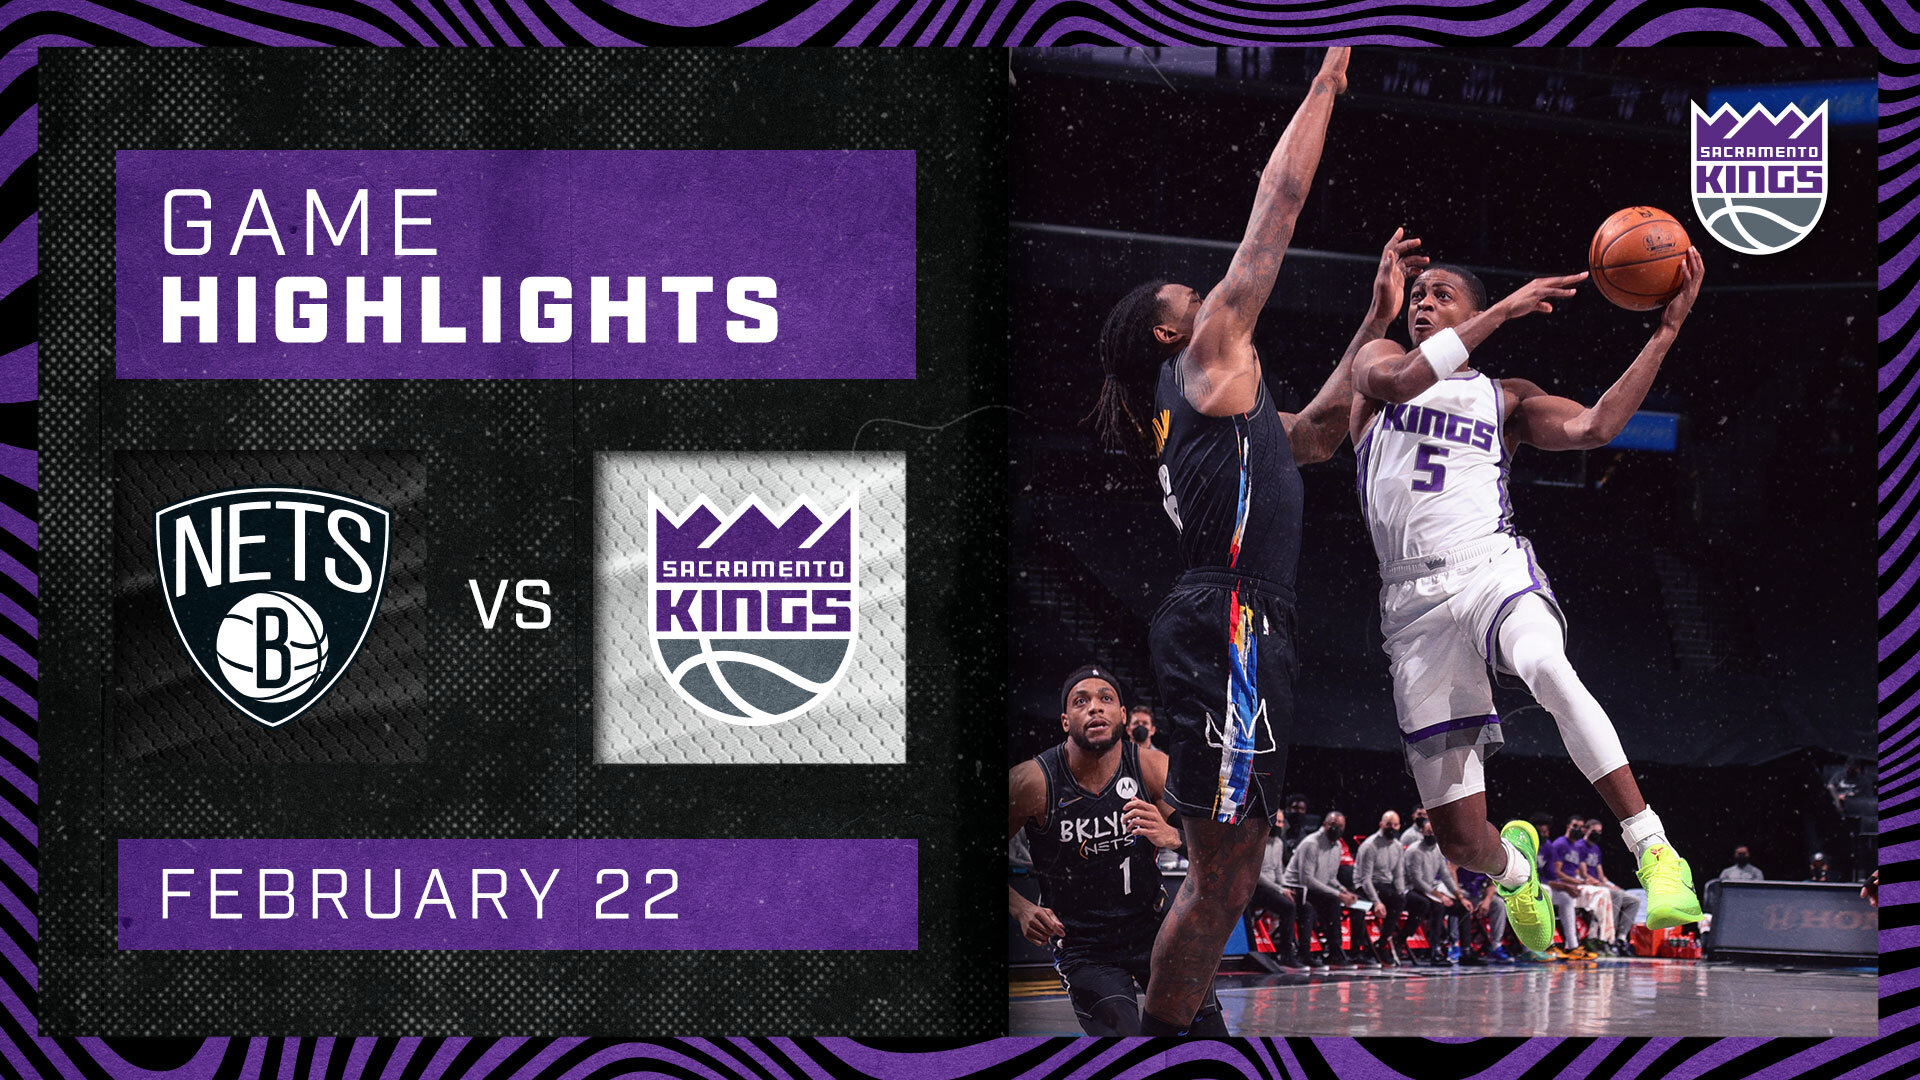 Kings Take Nets Down to the Wire | Kings vs Nets 2.23.21